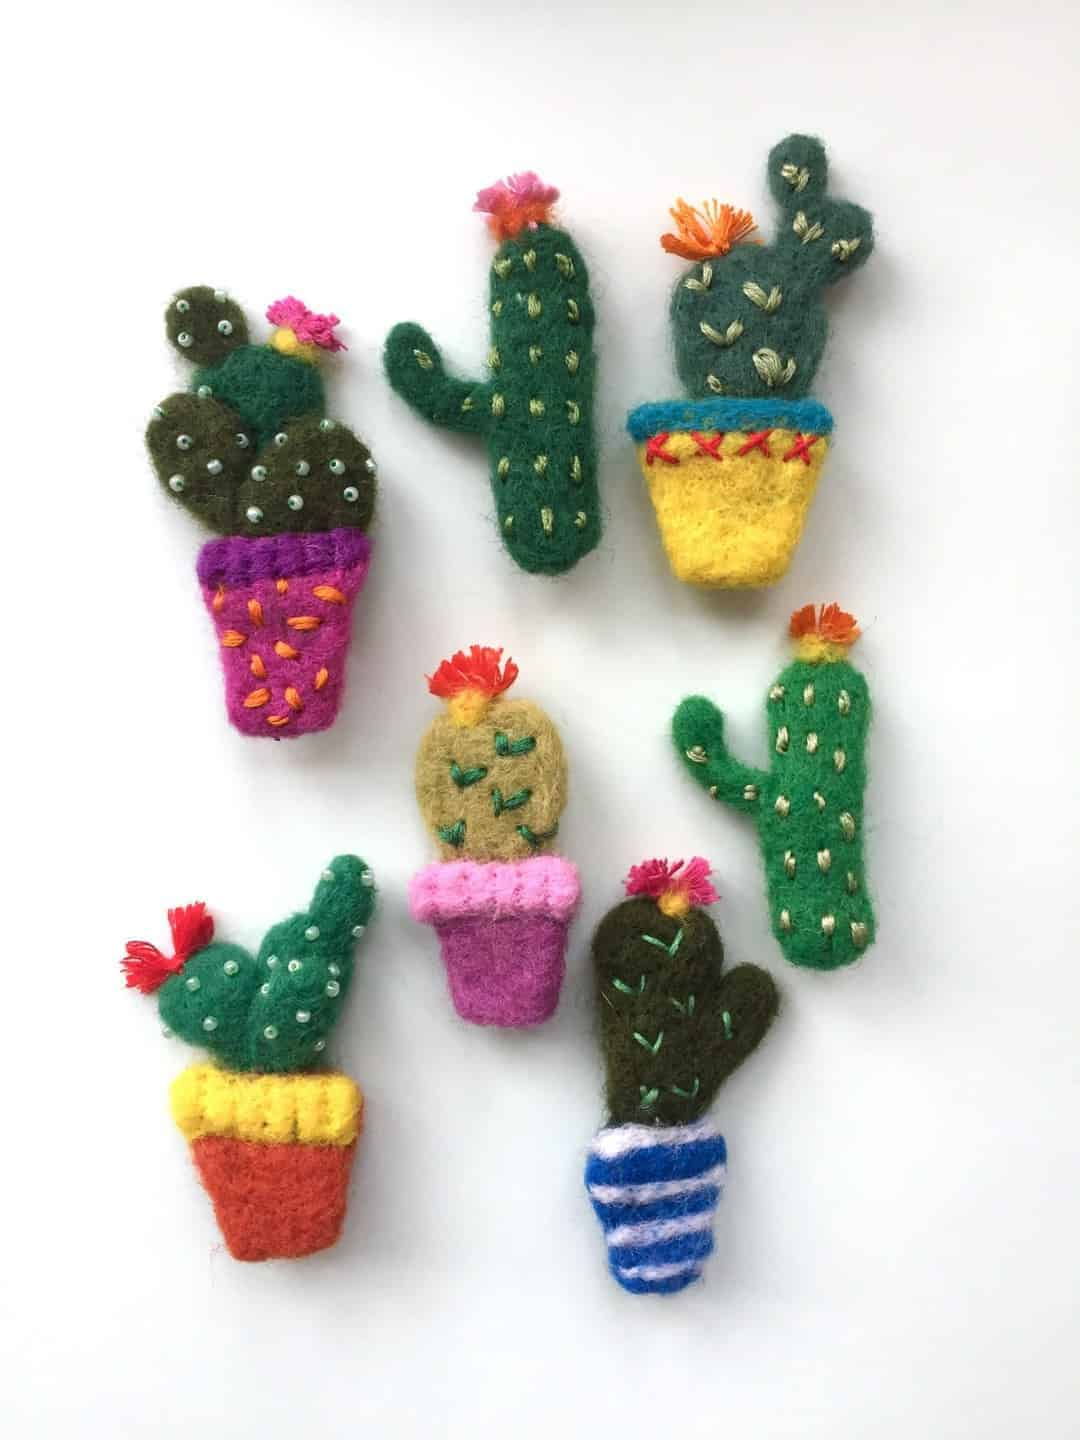 needle felted wool cacti emma herian sew recycled